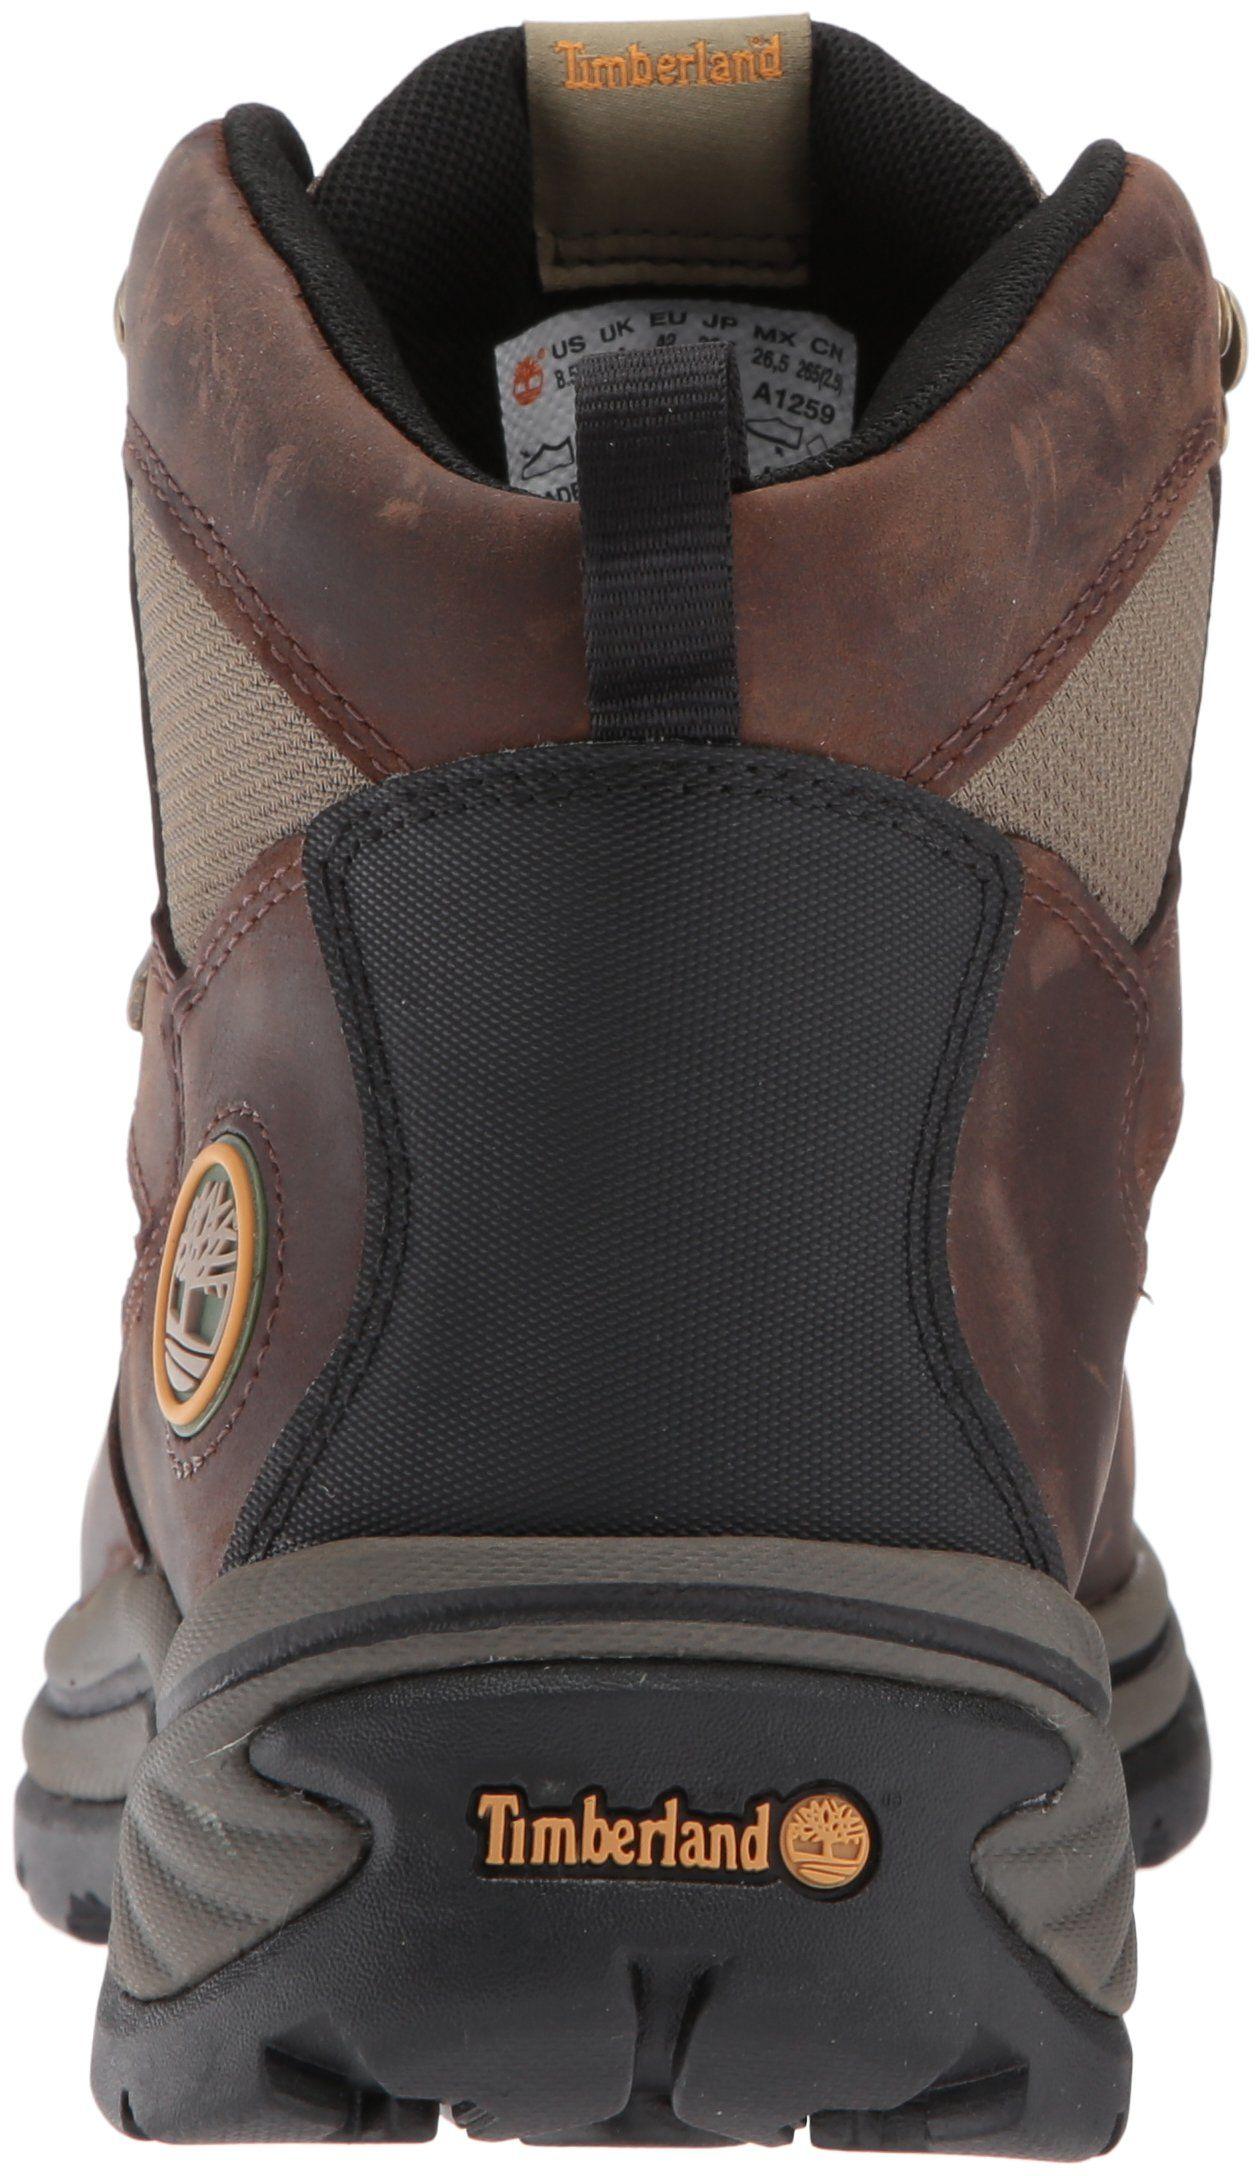 146a2721ecc Timberland Mens Chocorua Trail Mid Waterproof BootBrown/Green9 M ...